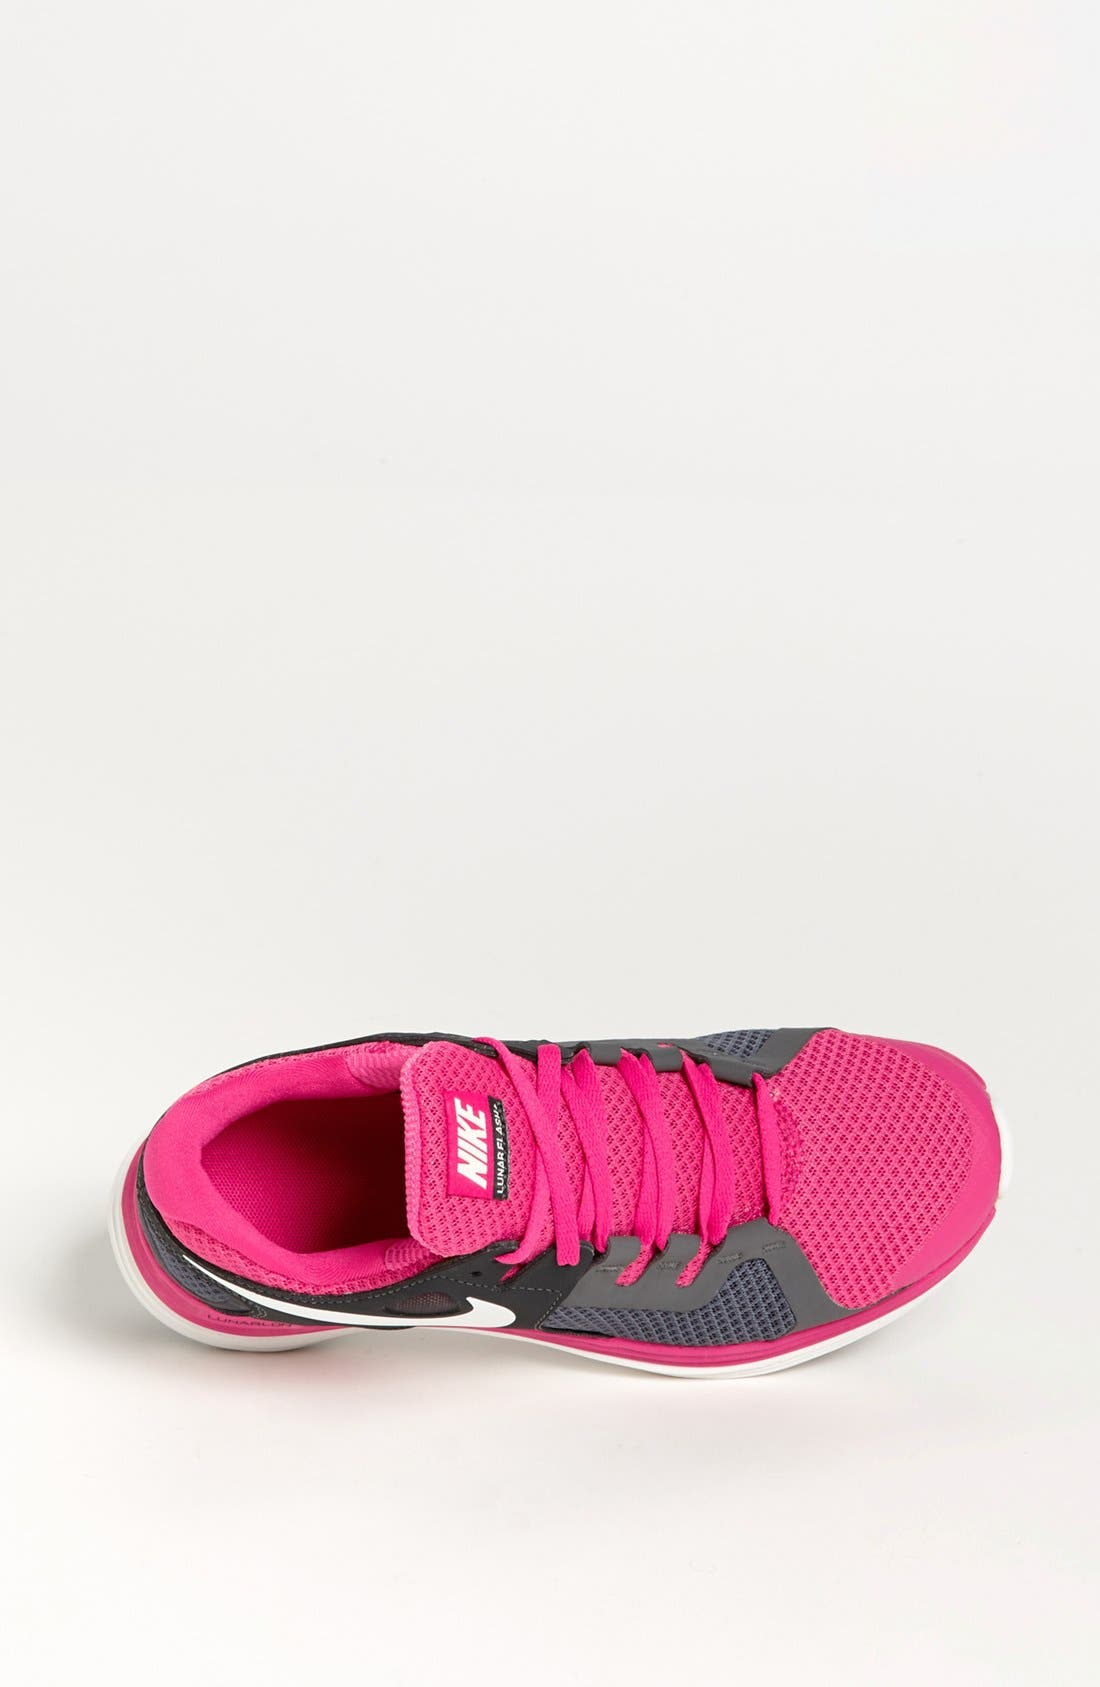 Alternate Image 3  - Nike 'Lunarflash' Running Shoe (Women)